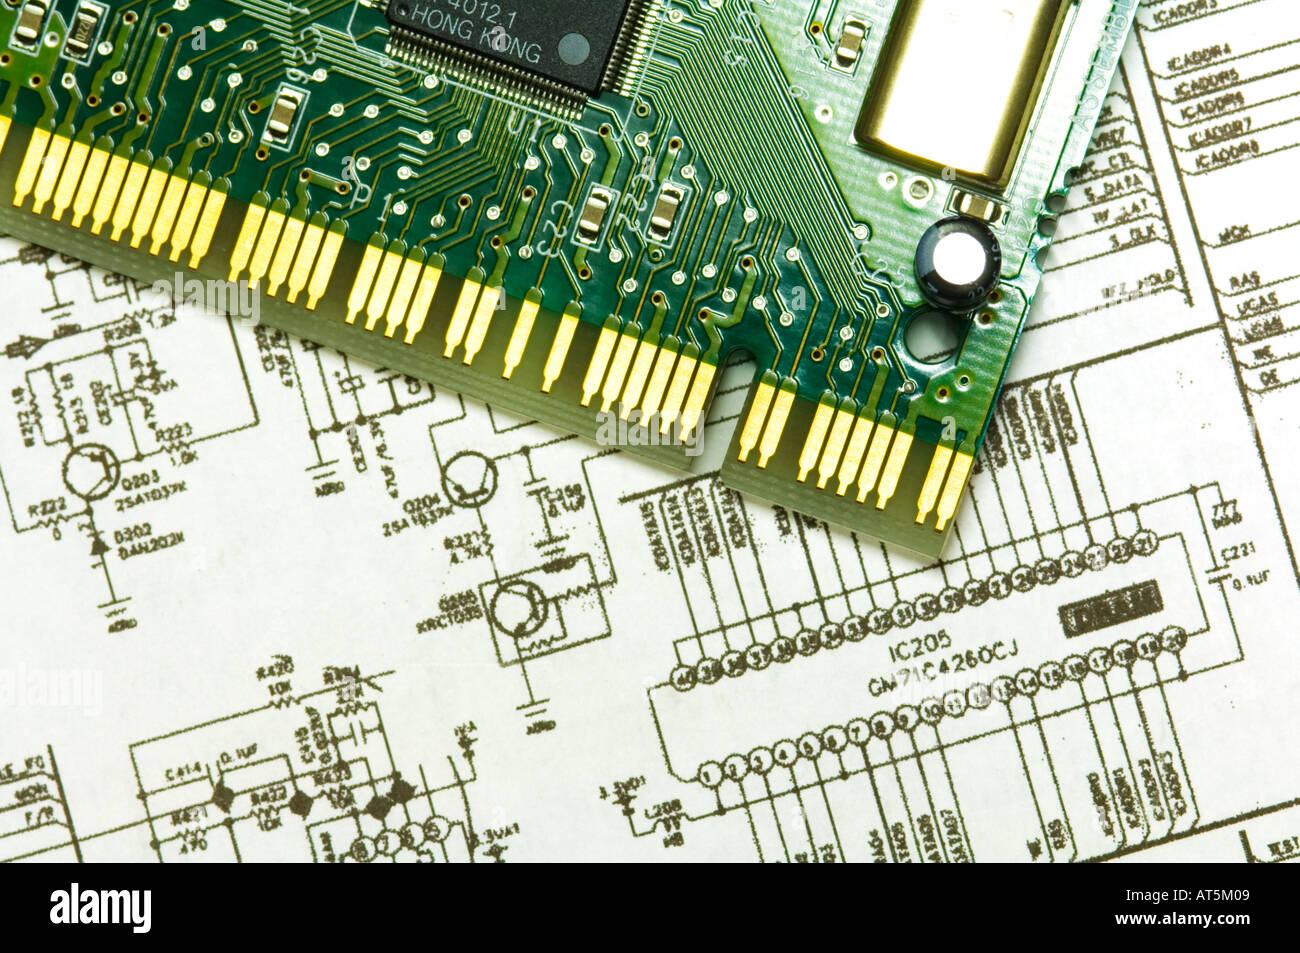 Schematic Drawing Stock Photos & Schematic Drawing Stock Images - Alamy